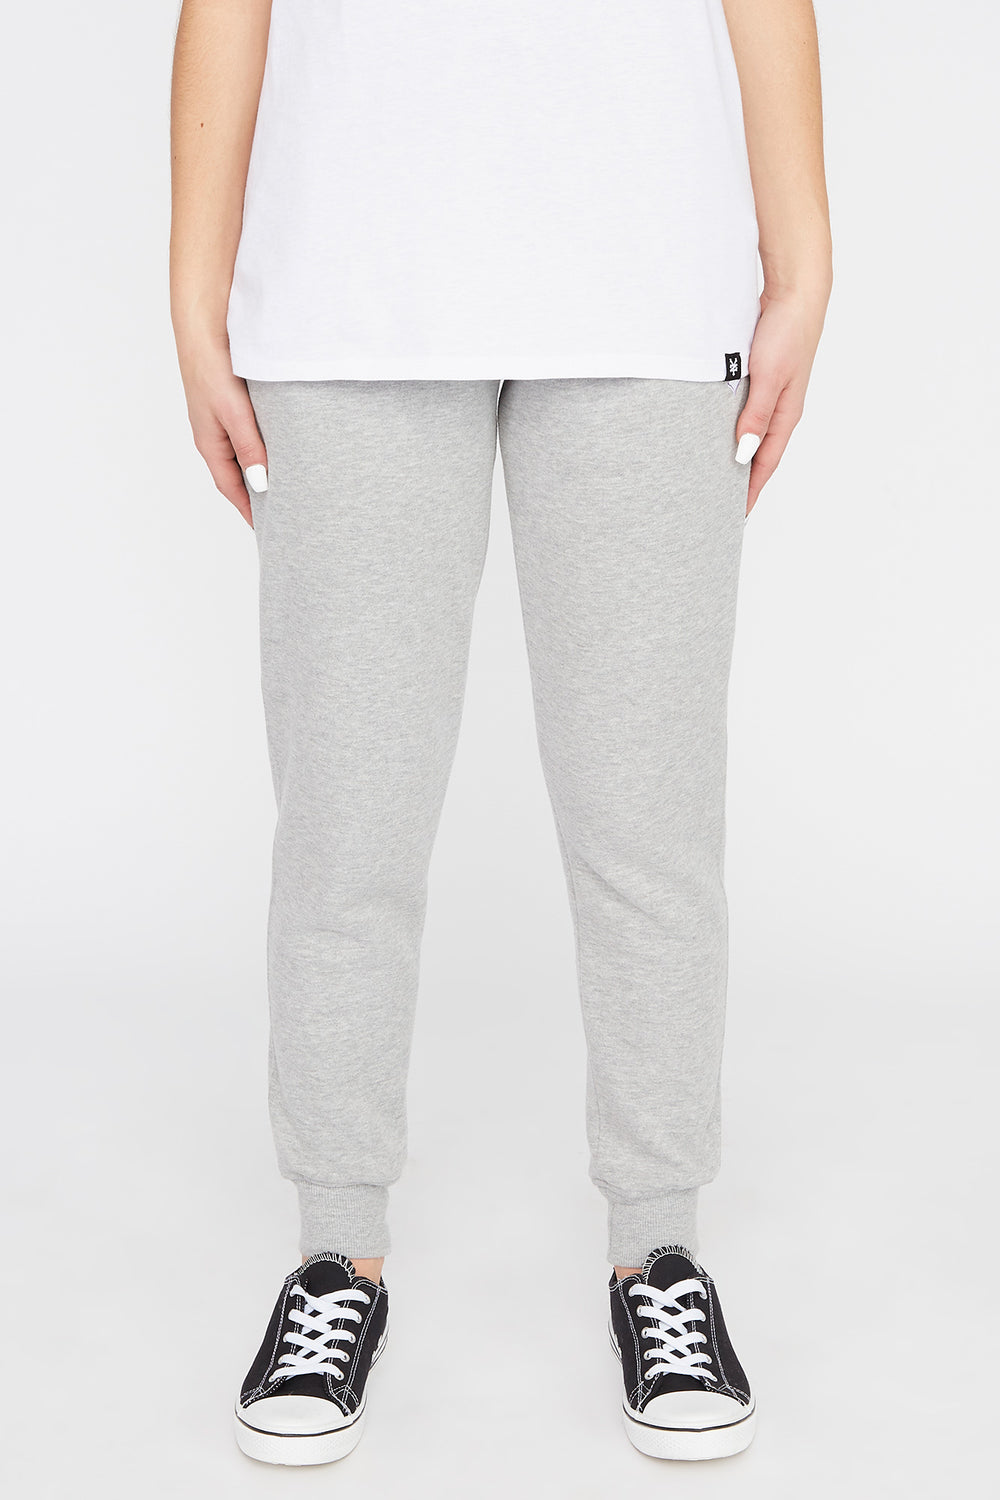 Zoo York Womens Embroidered Pastel Logo Jogger Heather Grey